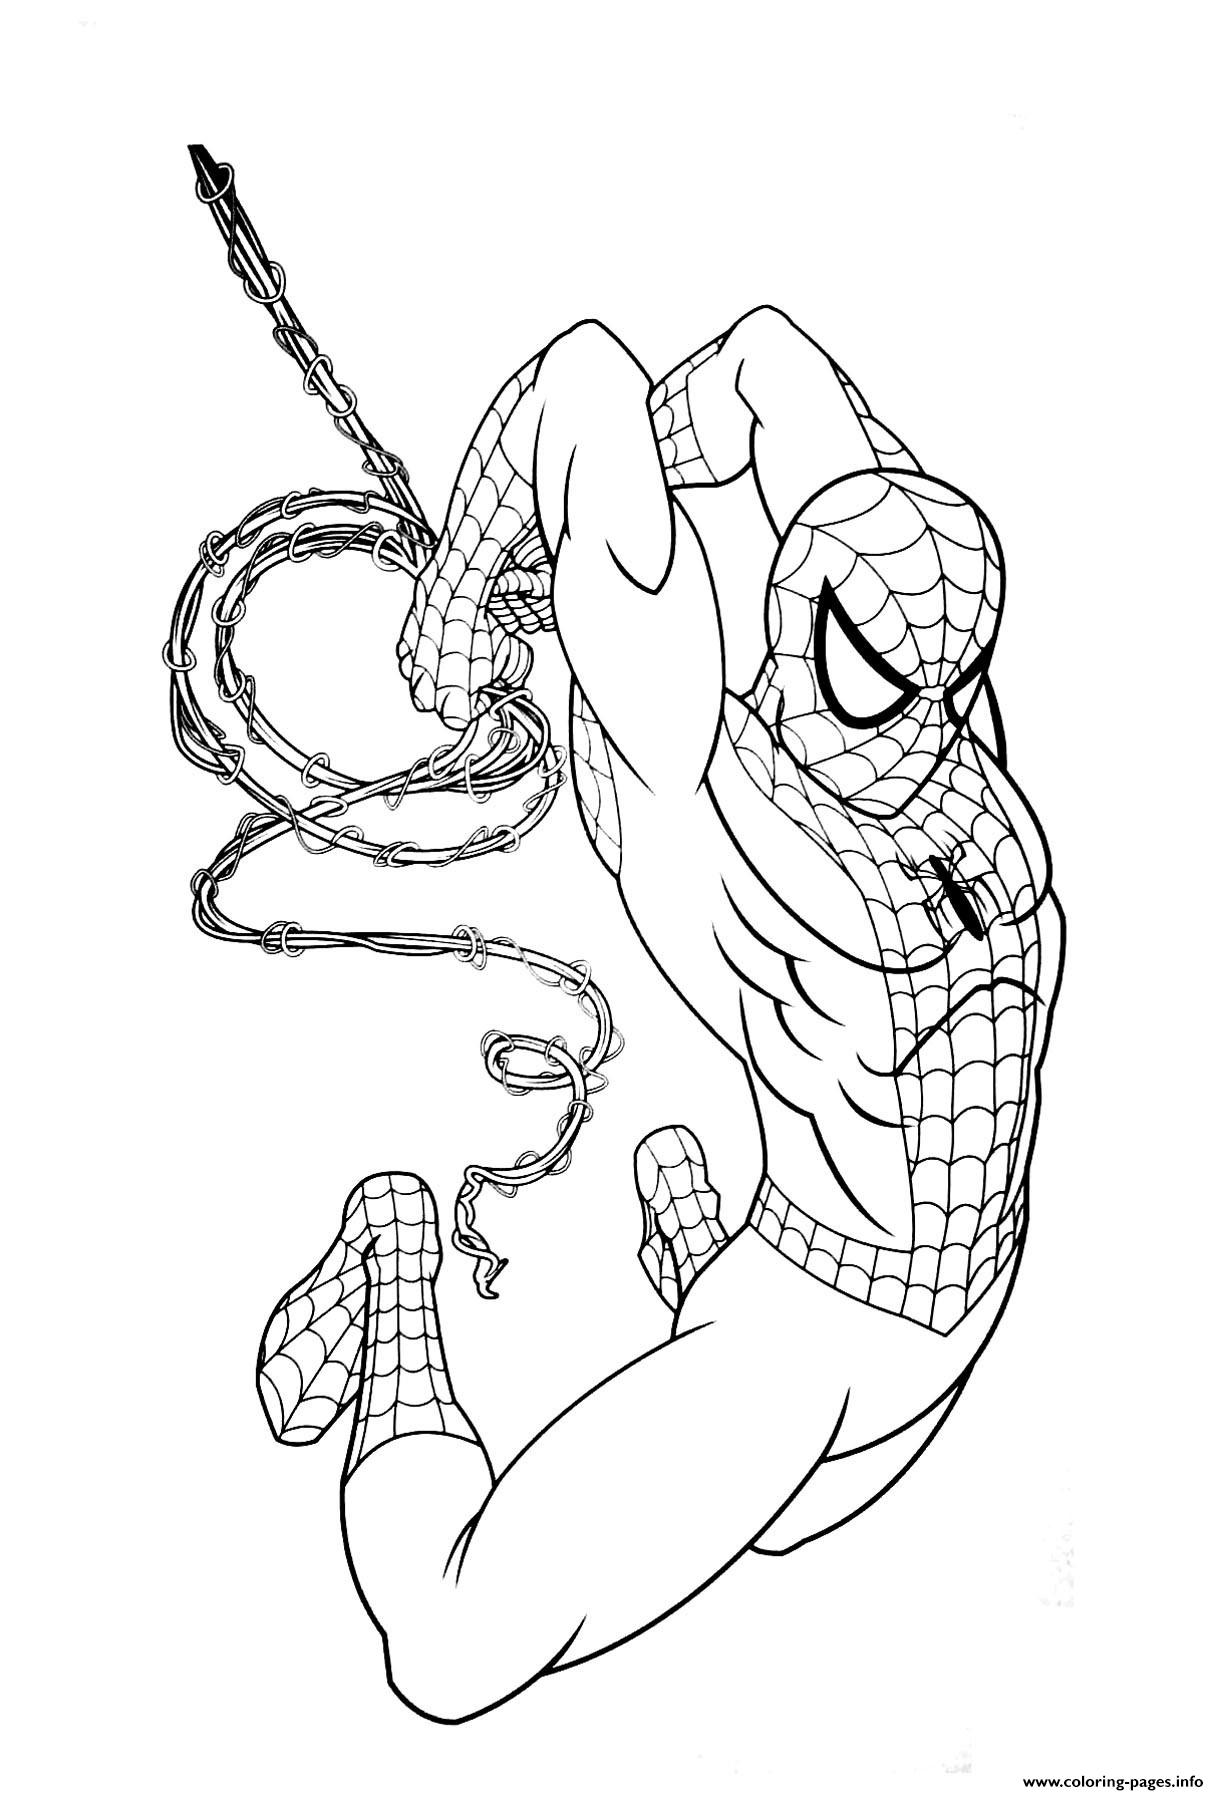 avengers endgame coloring pictures avengers endgame 34 printable coloring pages for kids avengers coloring pictures endgame